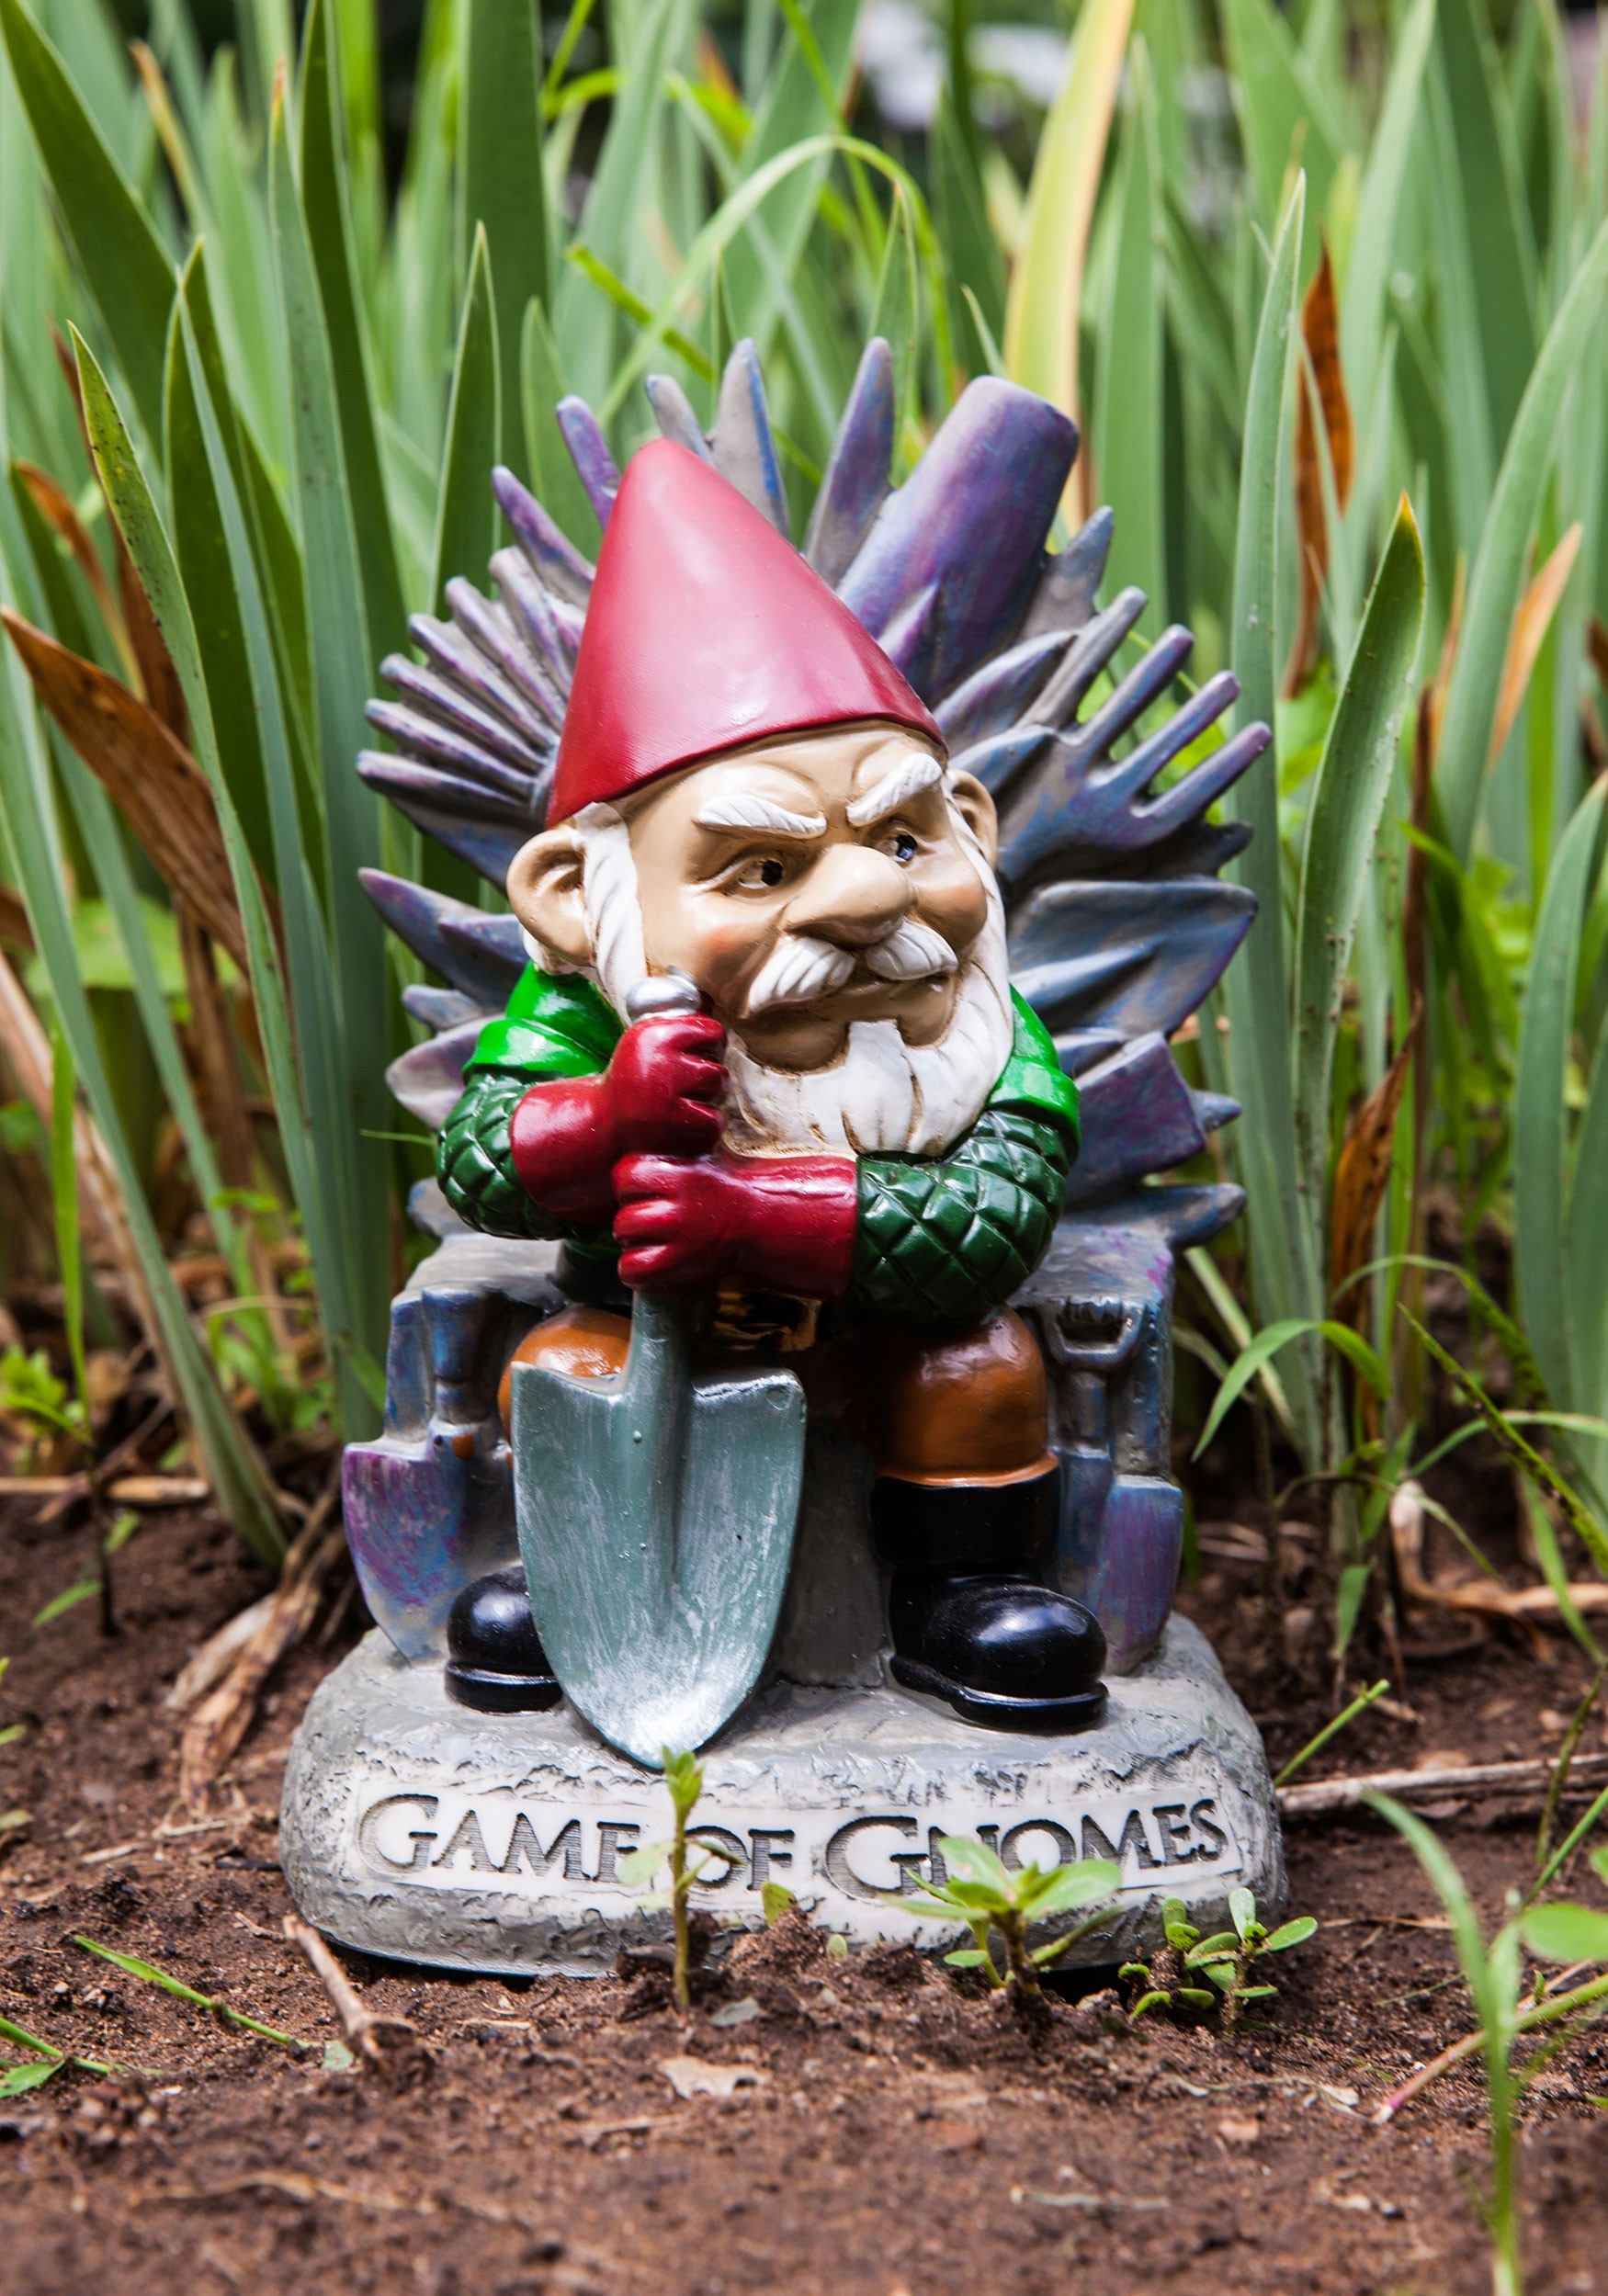 Www Garden Gonme: Game Of Gnomes Garden Gnome Statue